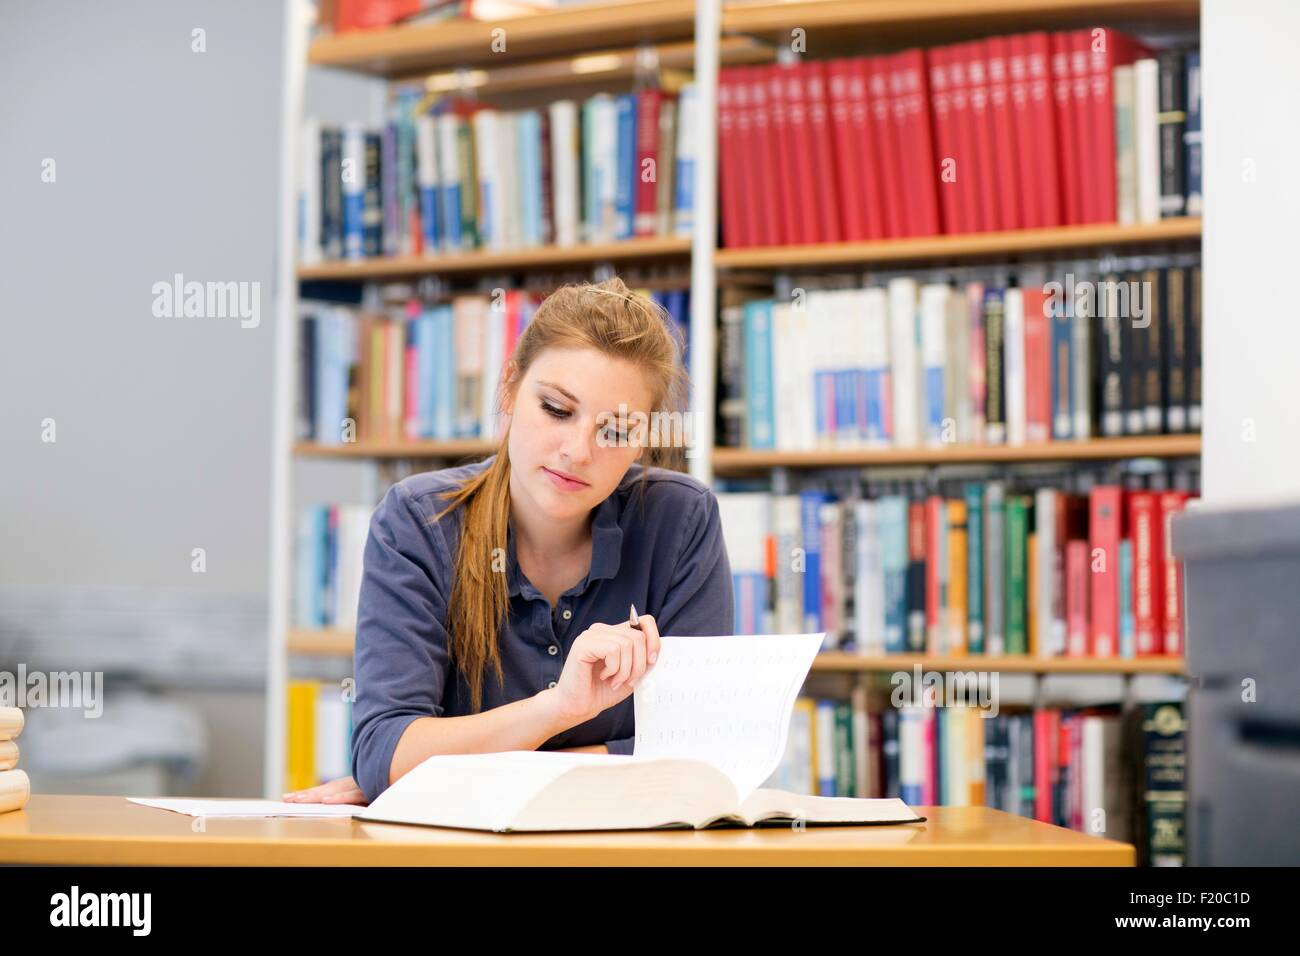 Young female student reading textbook at library desk - Stock Image